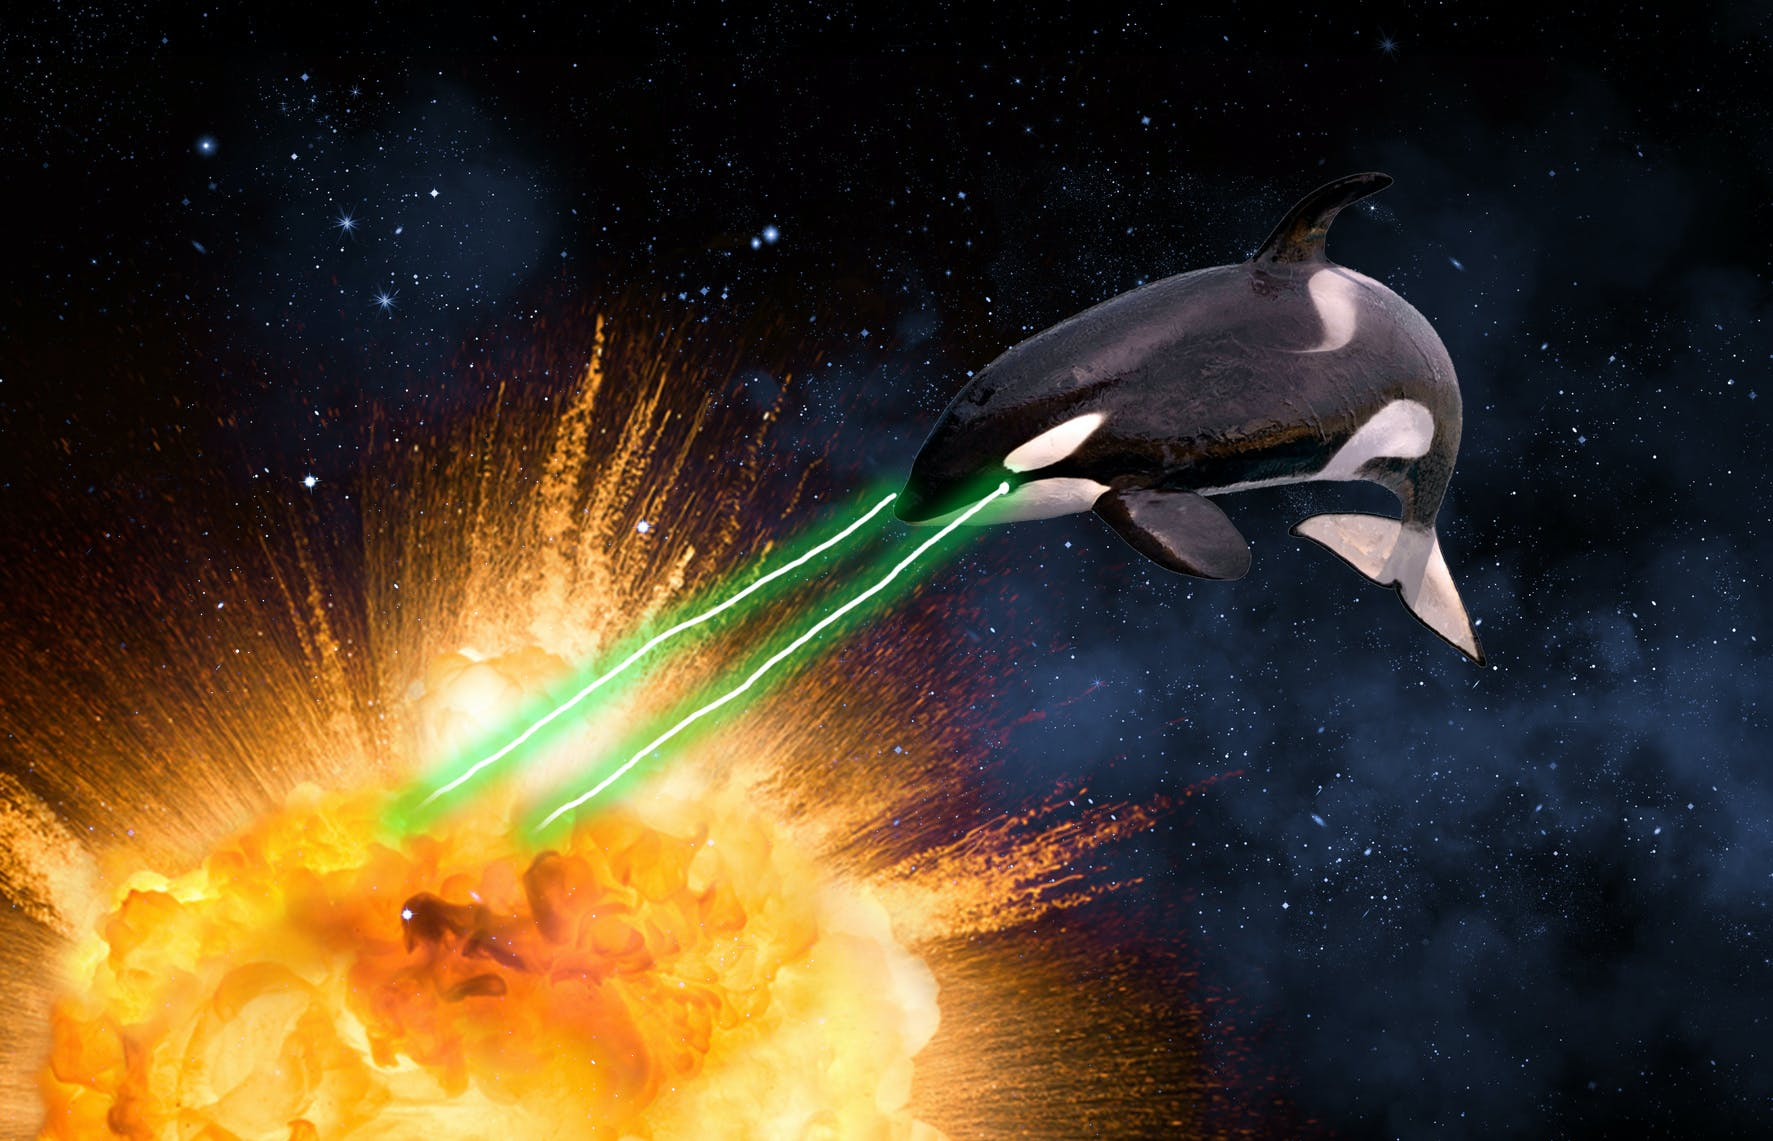 Killer whale blowing up a planet